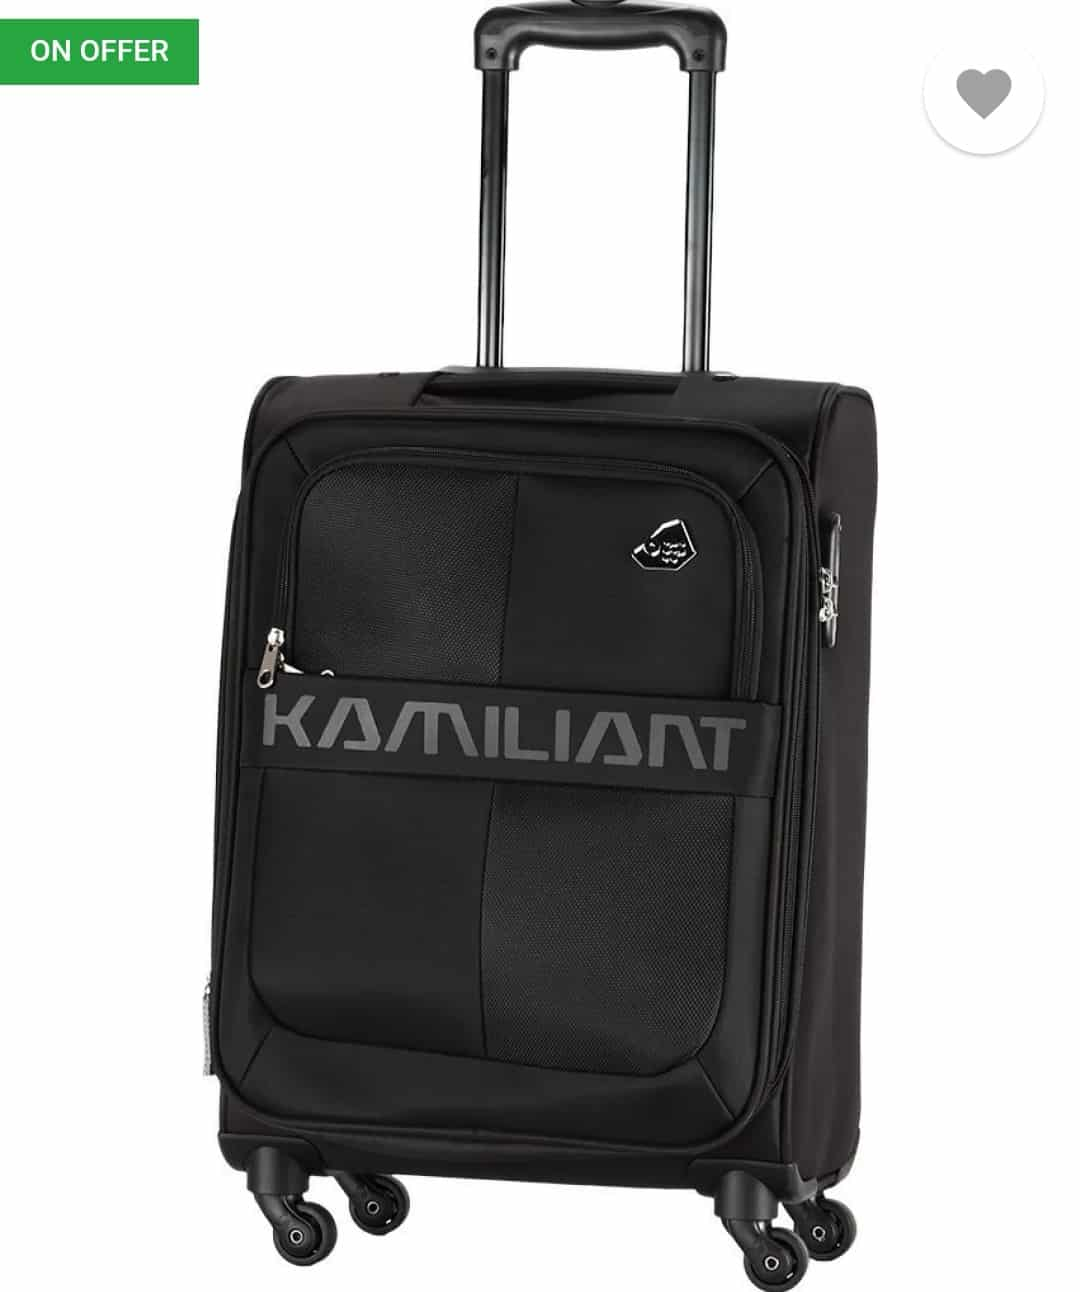 Kamiliant By American Tourister Suitcases upto 77% off from Rs.1564